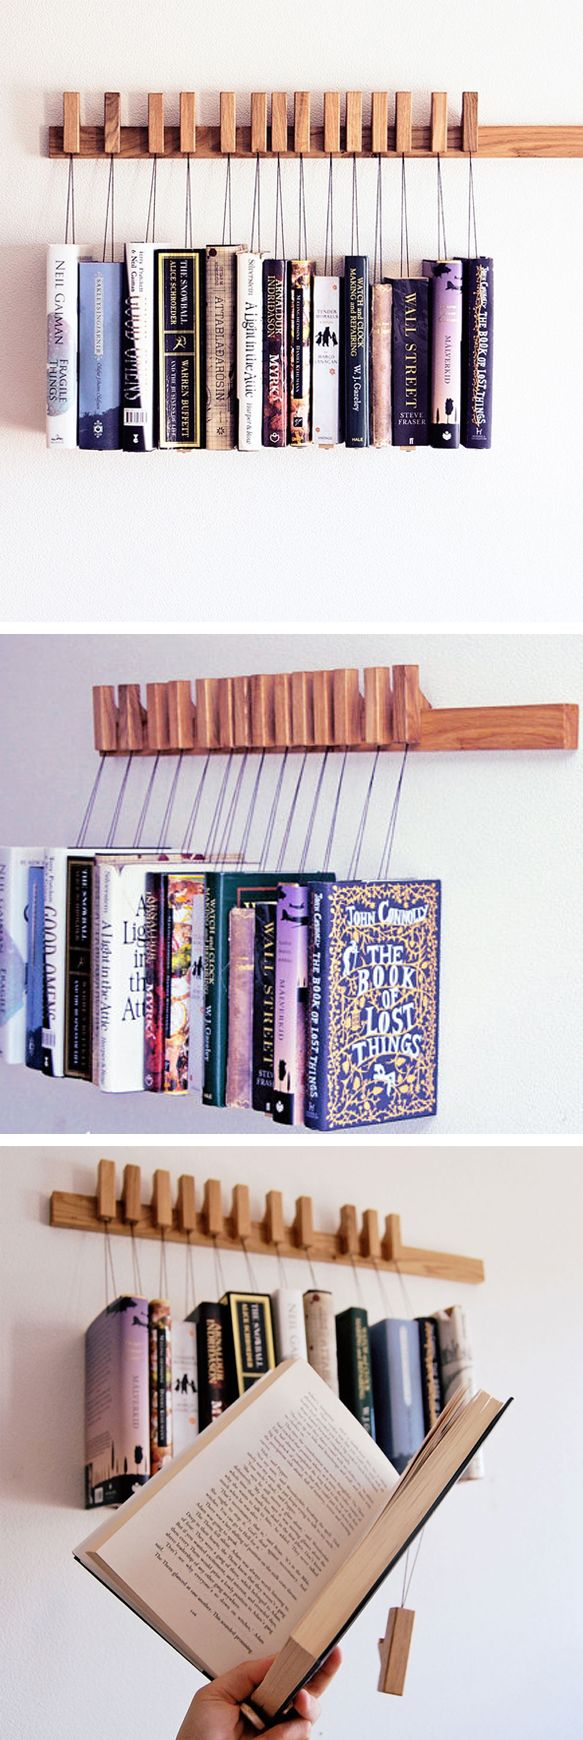 Oak wooden book rack // awesome design!